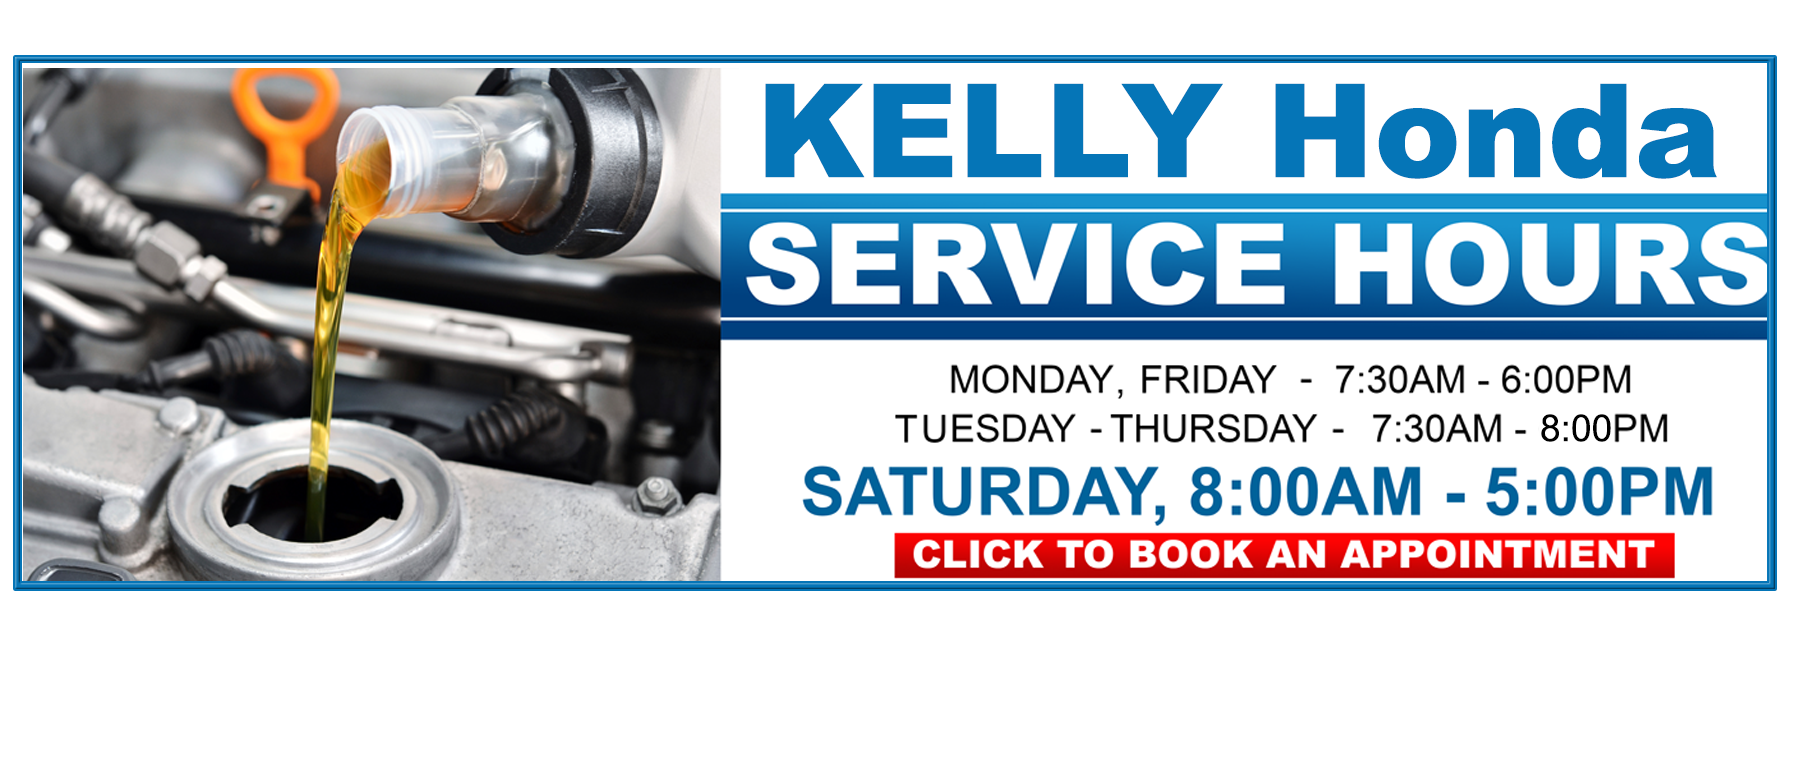 Kelly Honda Service Hours in Lynn, MA